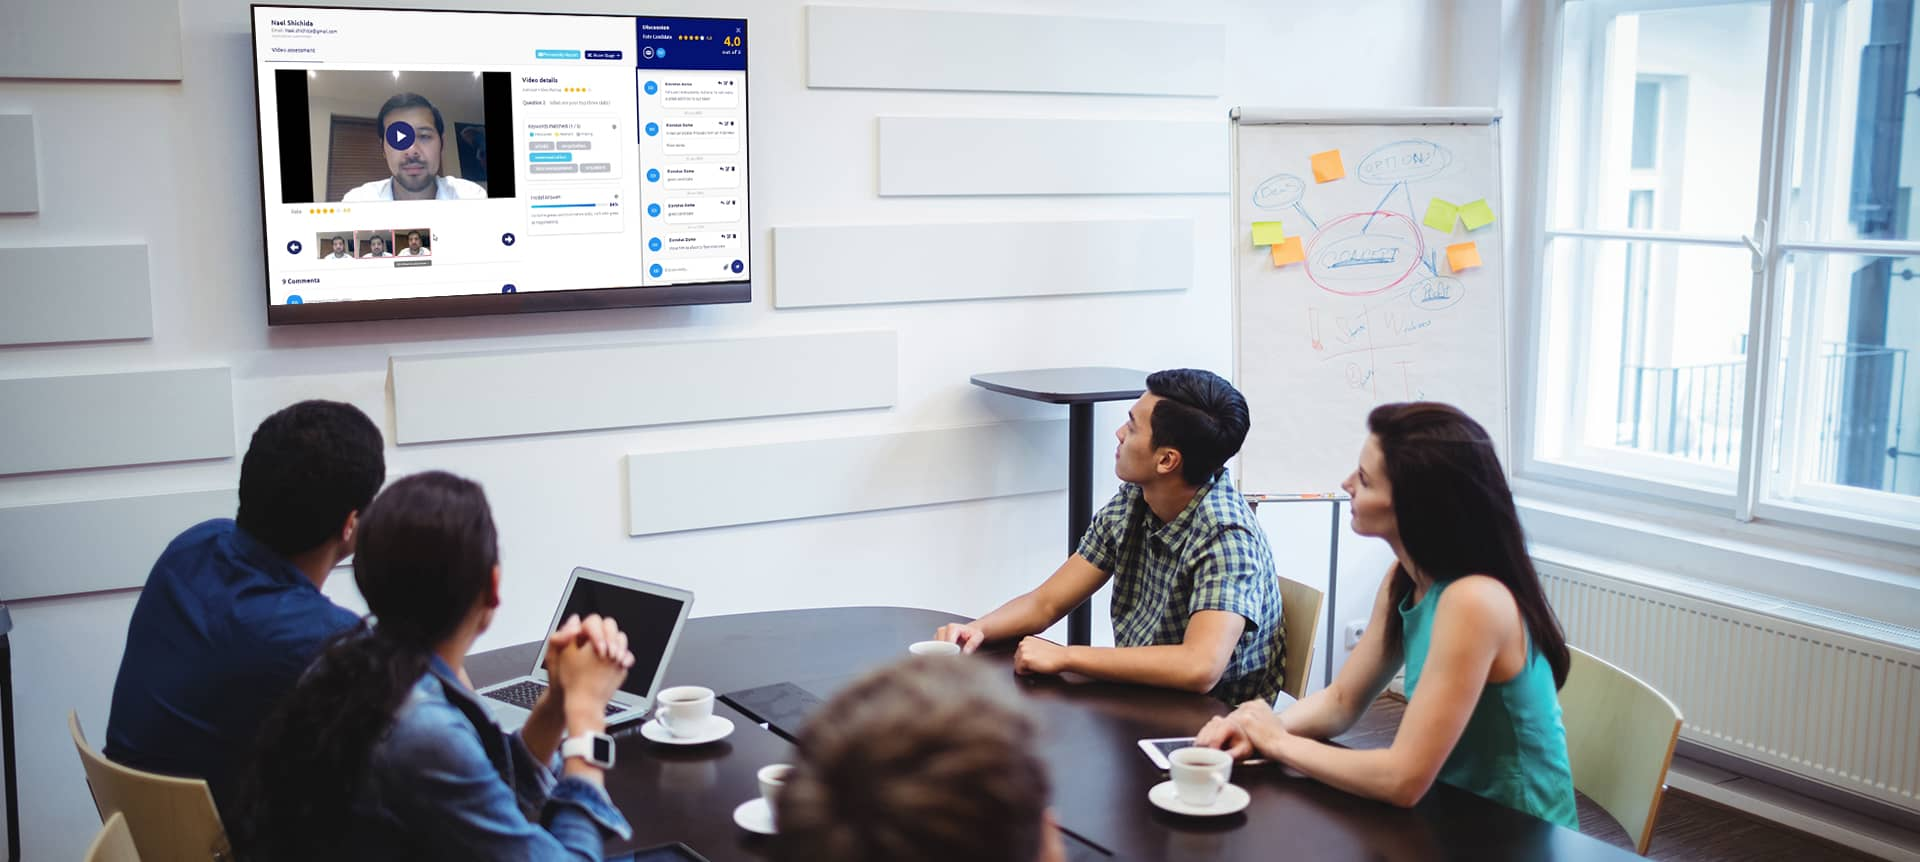 A group of recruiters watching a video assessment interview on TV